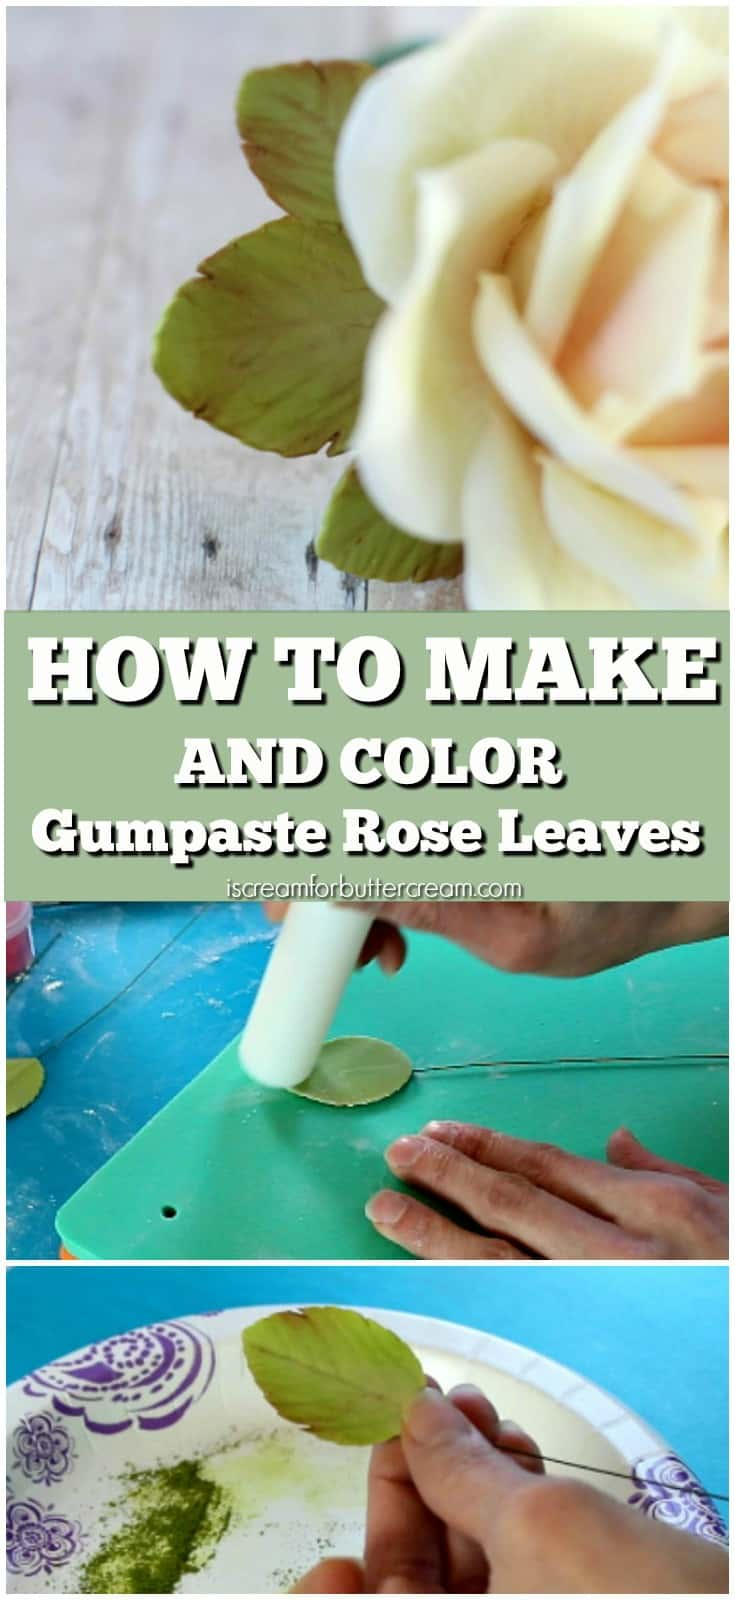 How to Make and Color Gumpaste Rose Leaves Pinterest Graphic